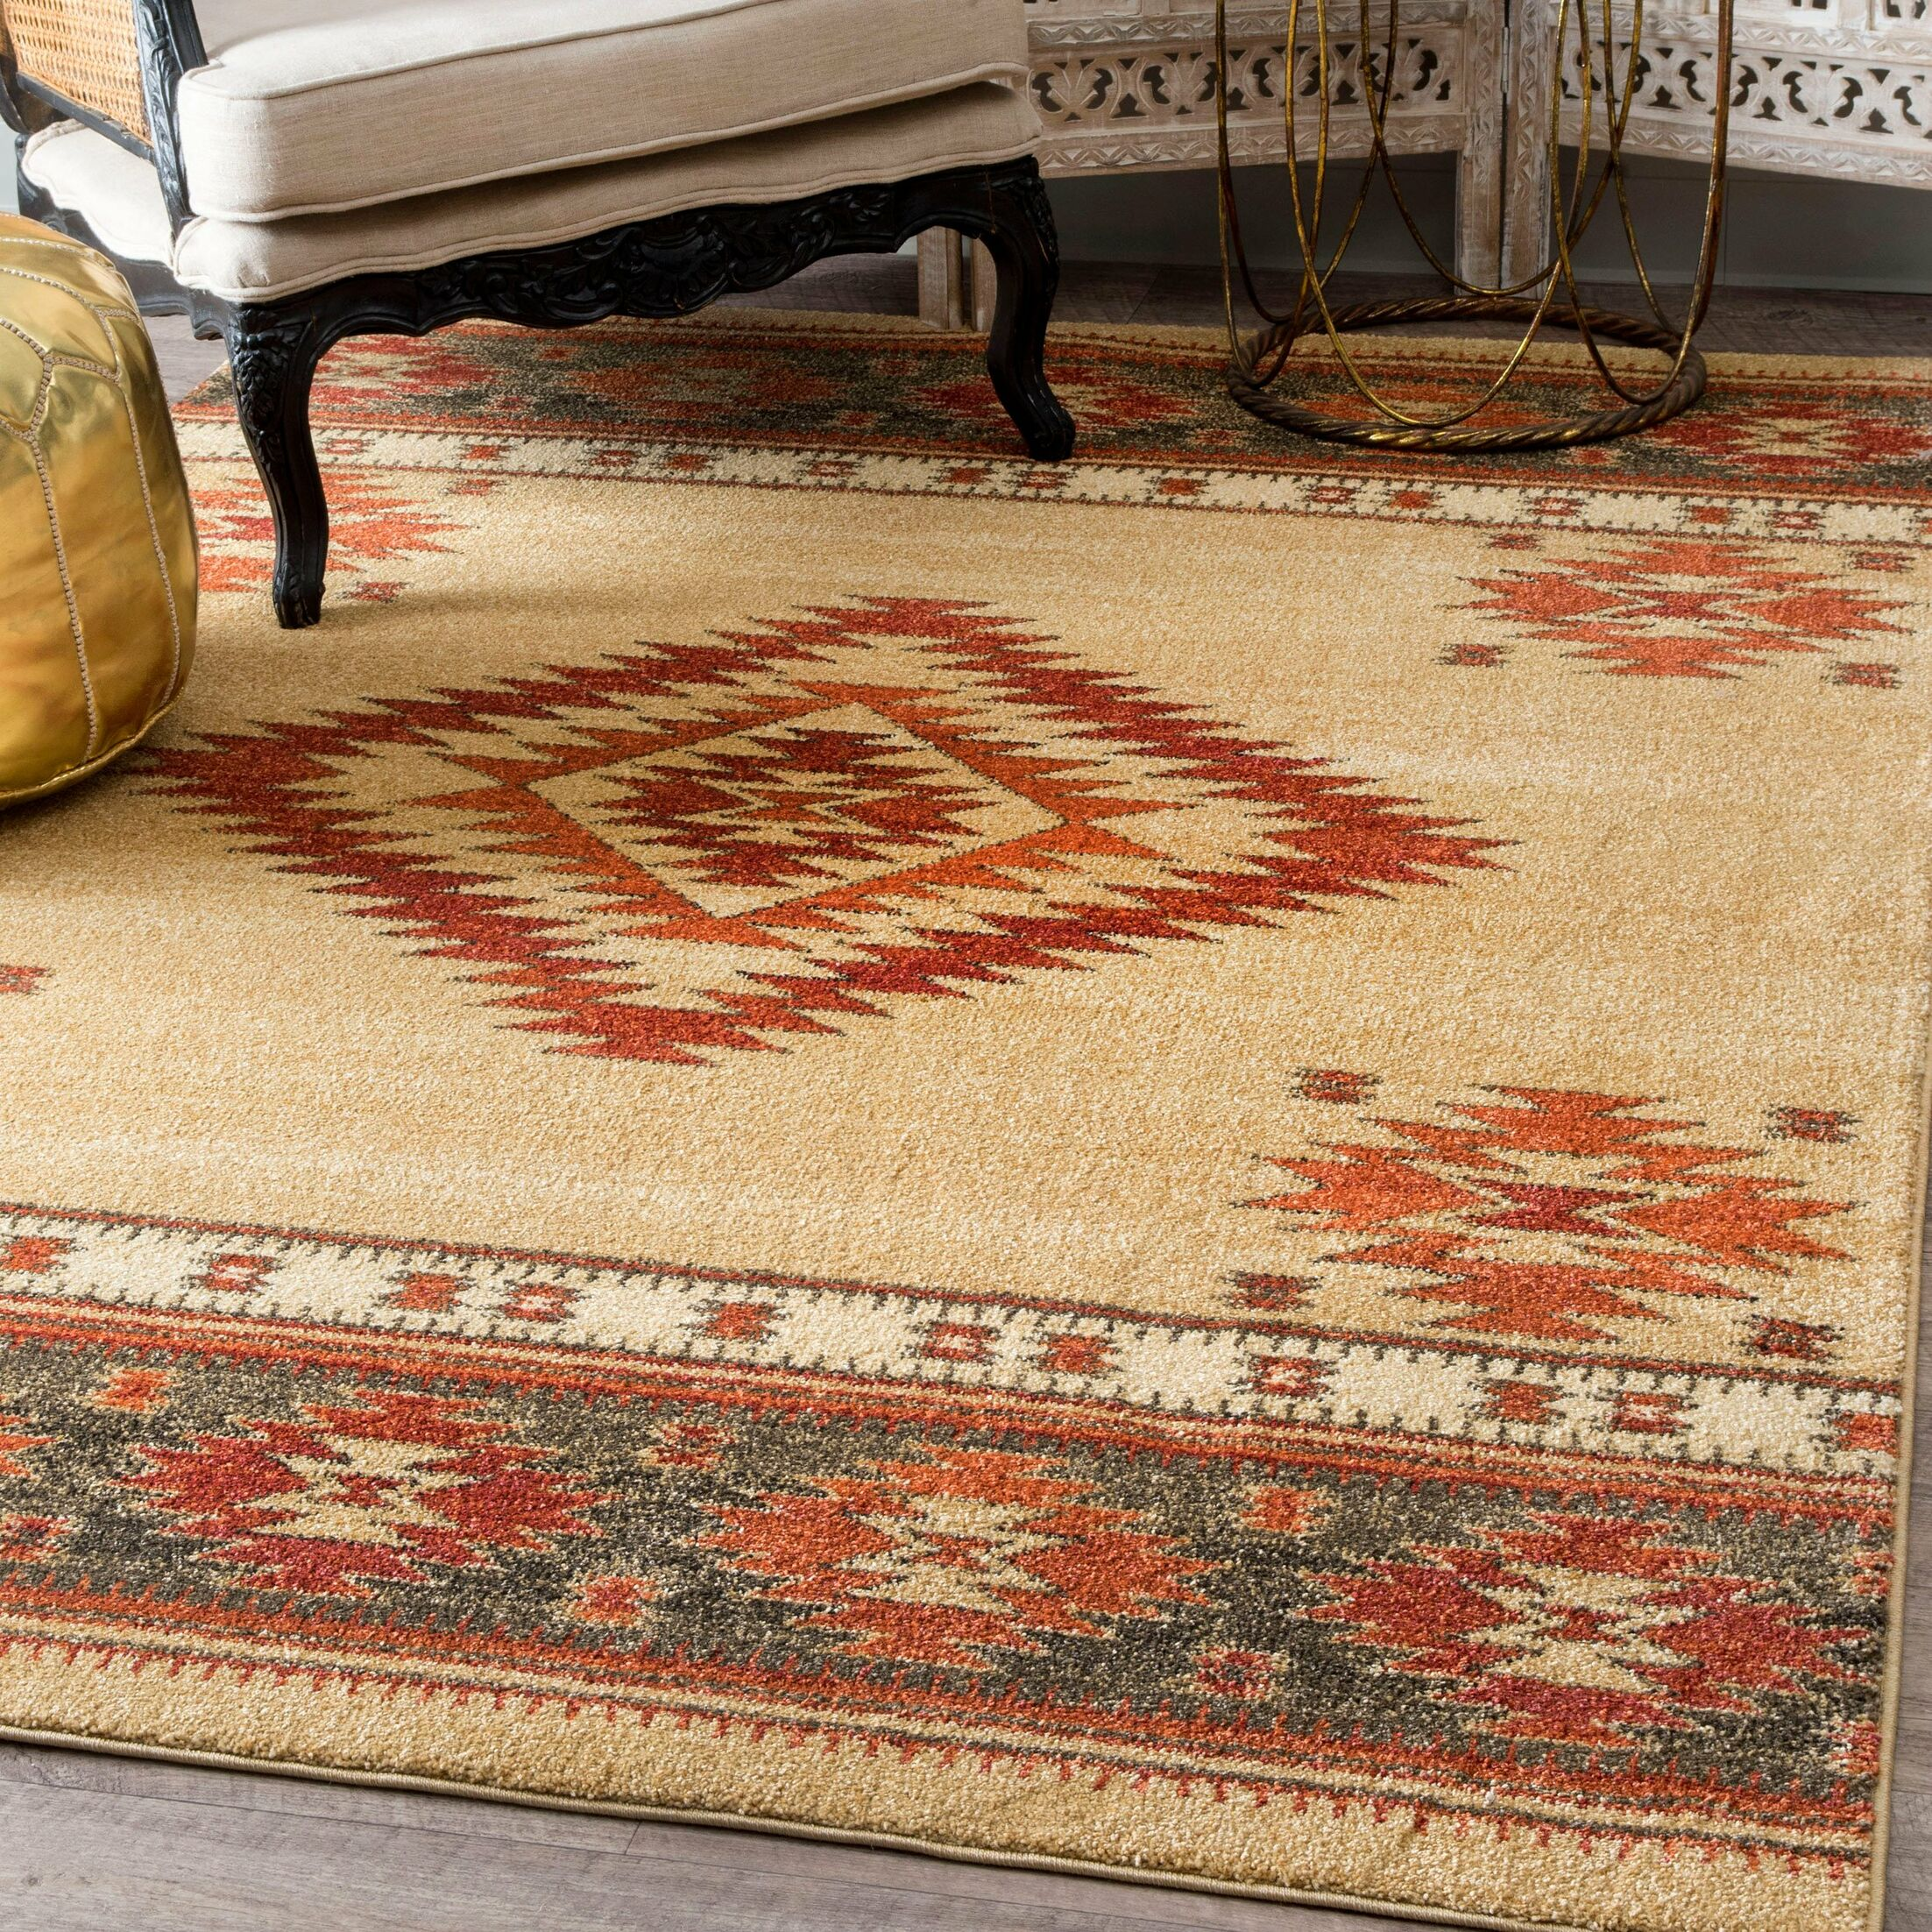 Oswego Beige/Red Area Rug Rug Size: Rectangle 5' x 7'5